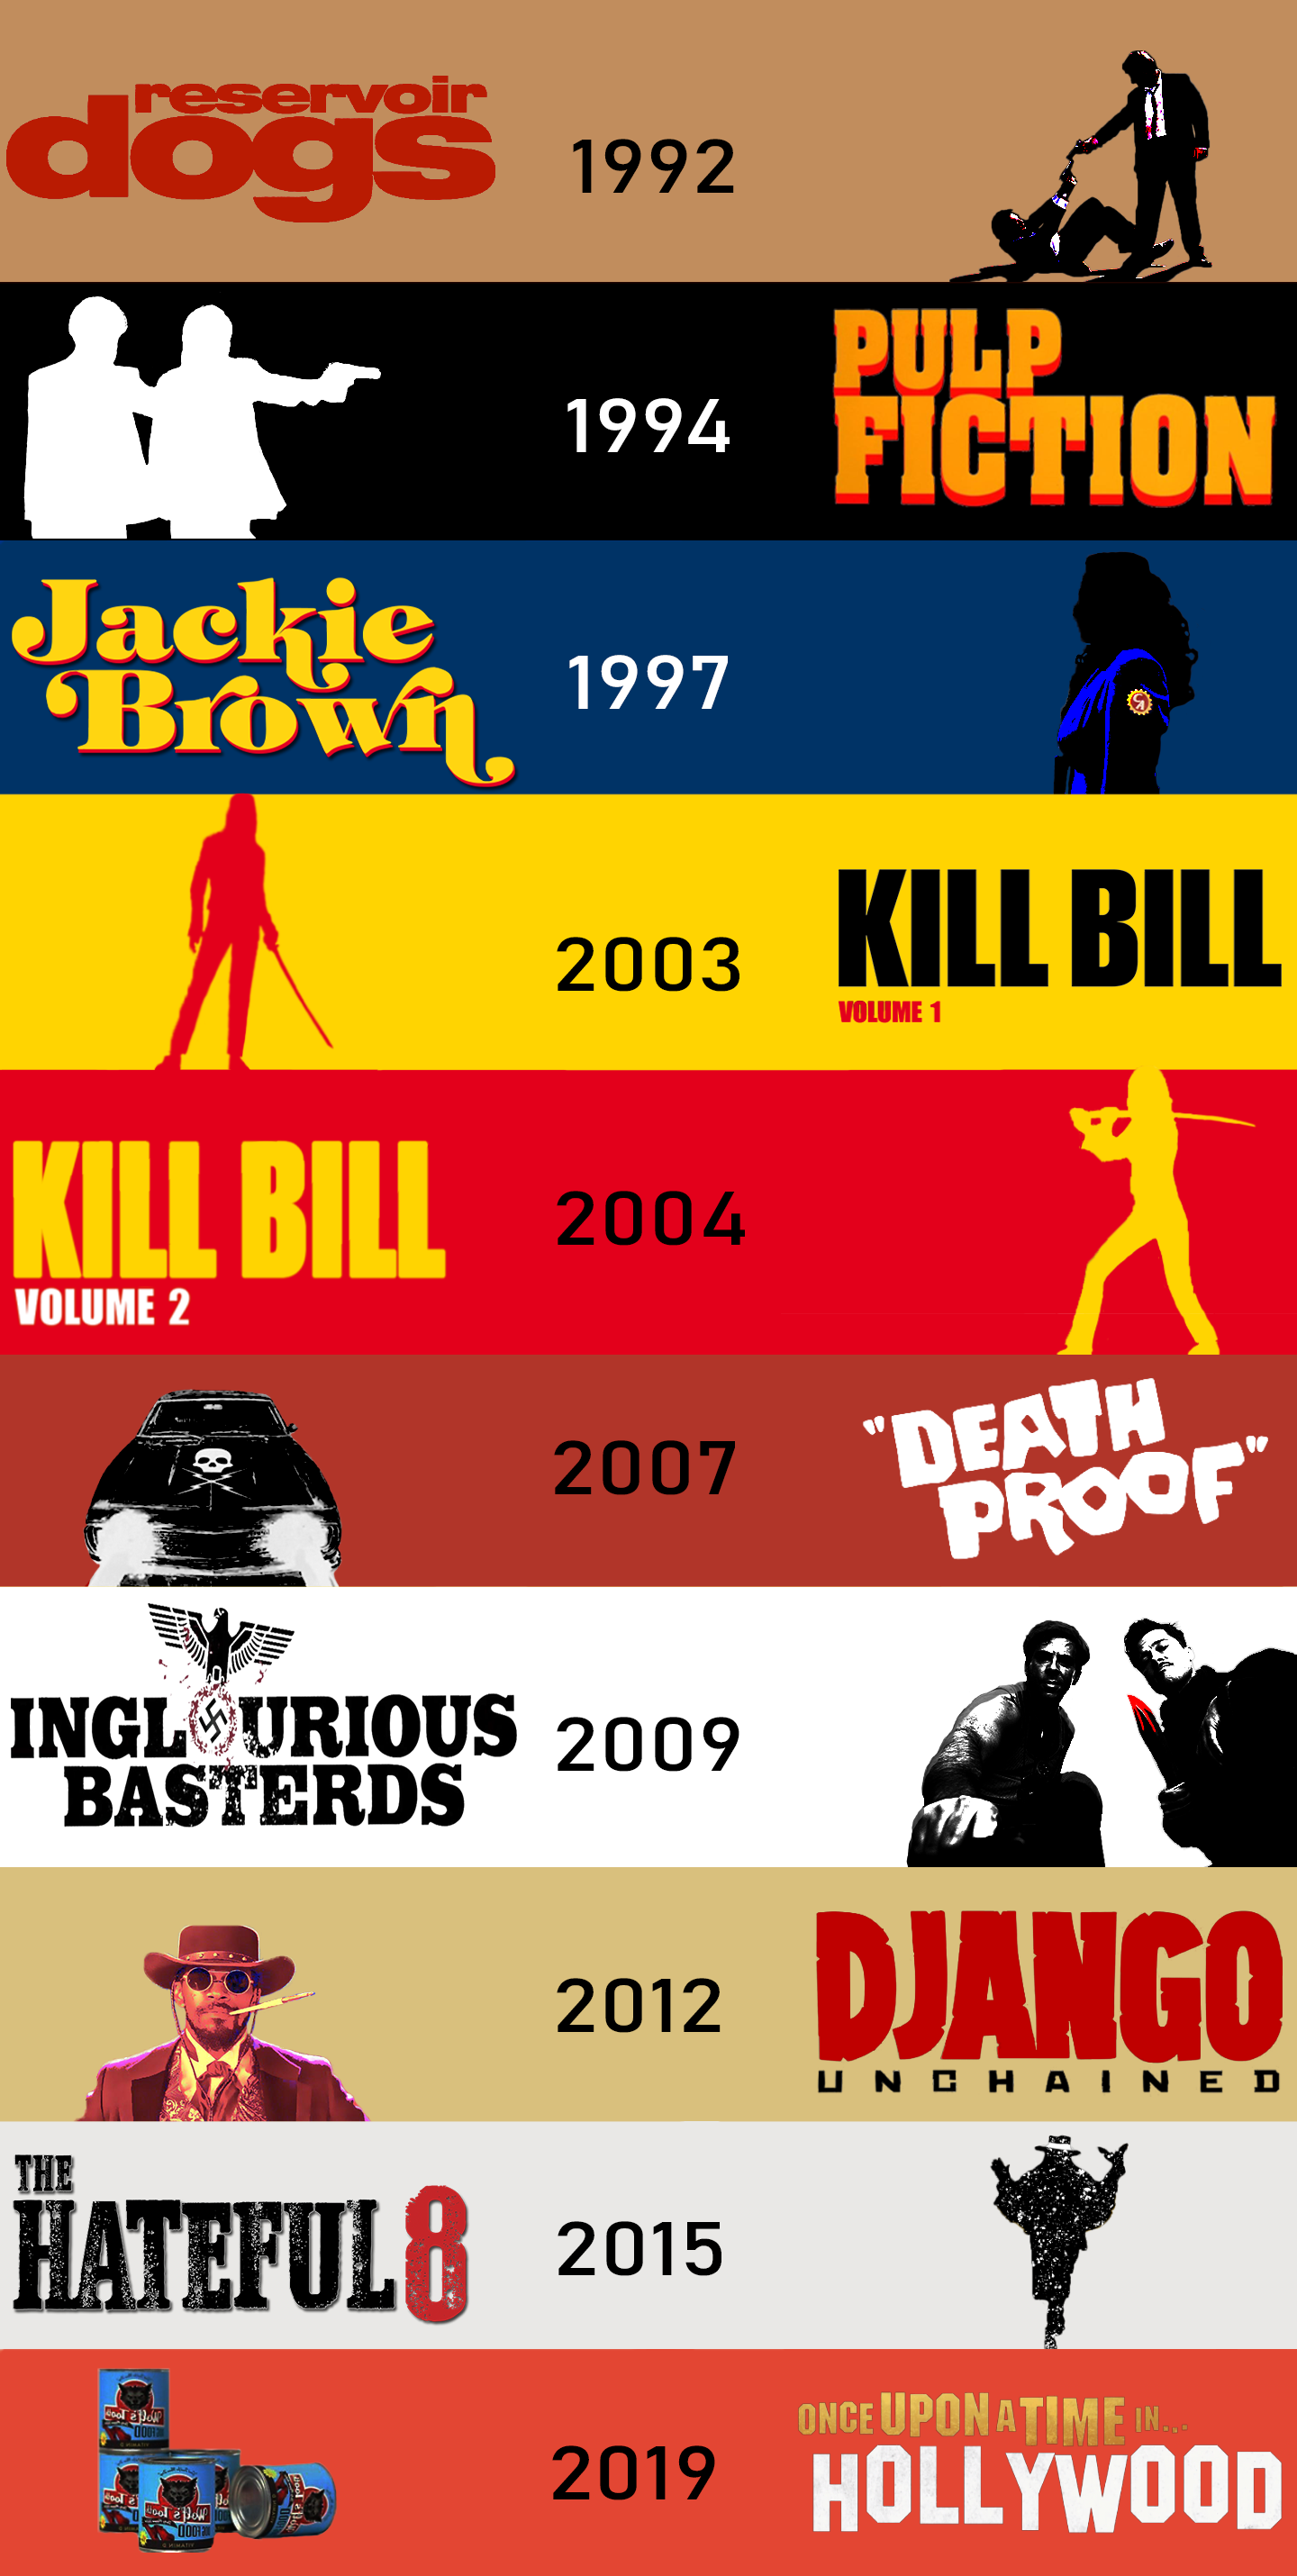 sarcastic.us-&nbspThis website is for sale!-&nbspsarcastic Resources and Information. #filmposters Infographic I made on Quentin Tarantino's films